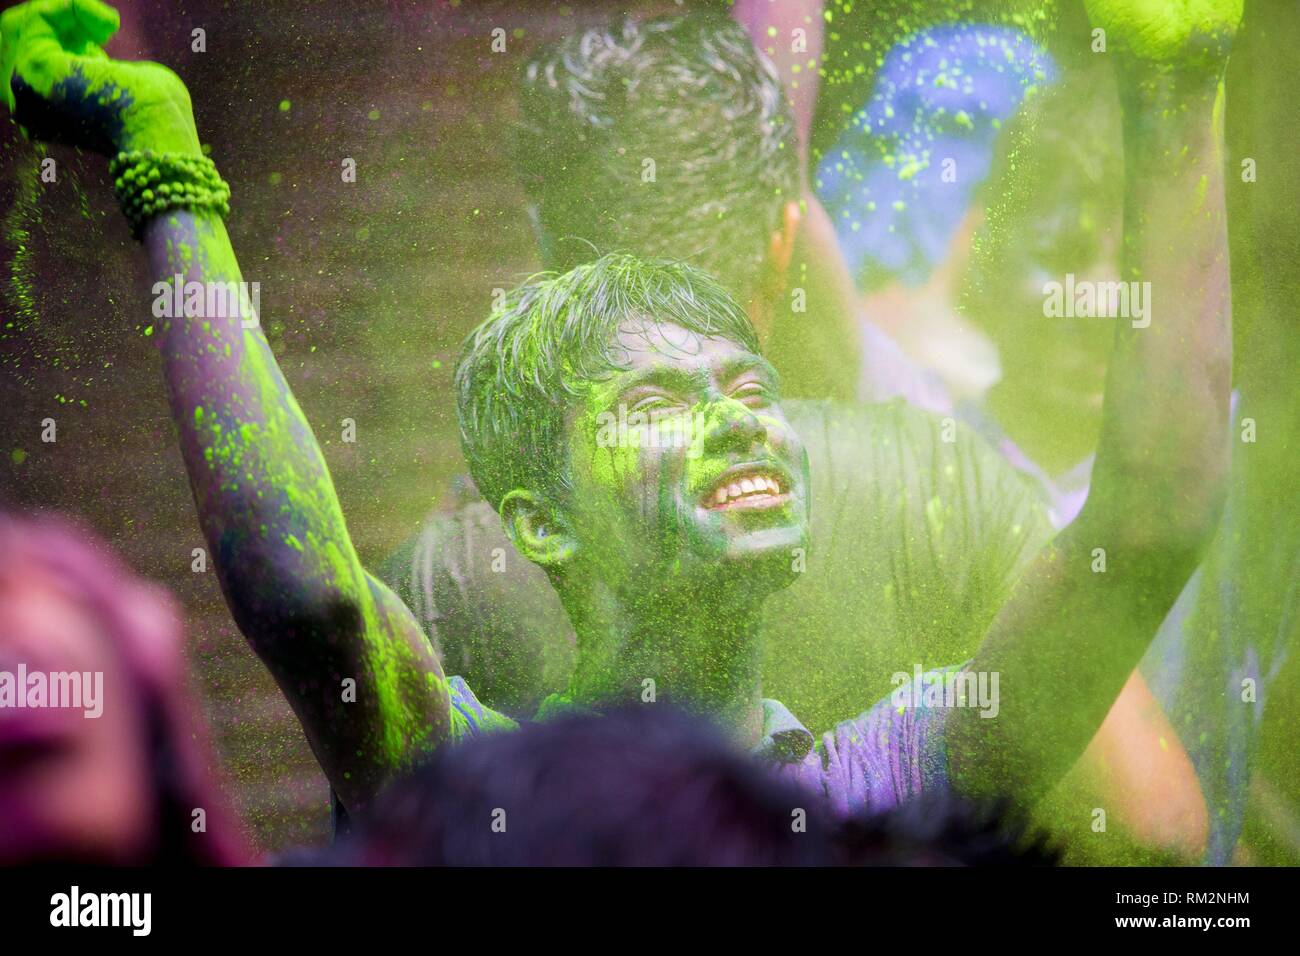 Color of festival 2016. Shankhari Bazar in big color powder market of dhaka ready for big Hindu festival in Dol and Holi festivals. Over the years it - Stock Image